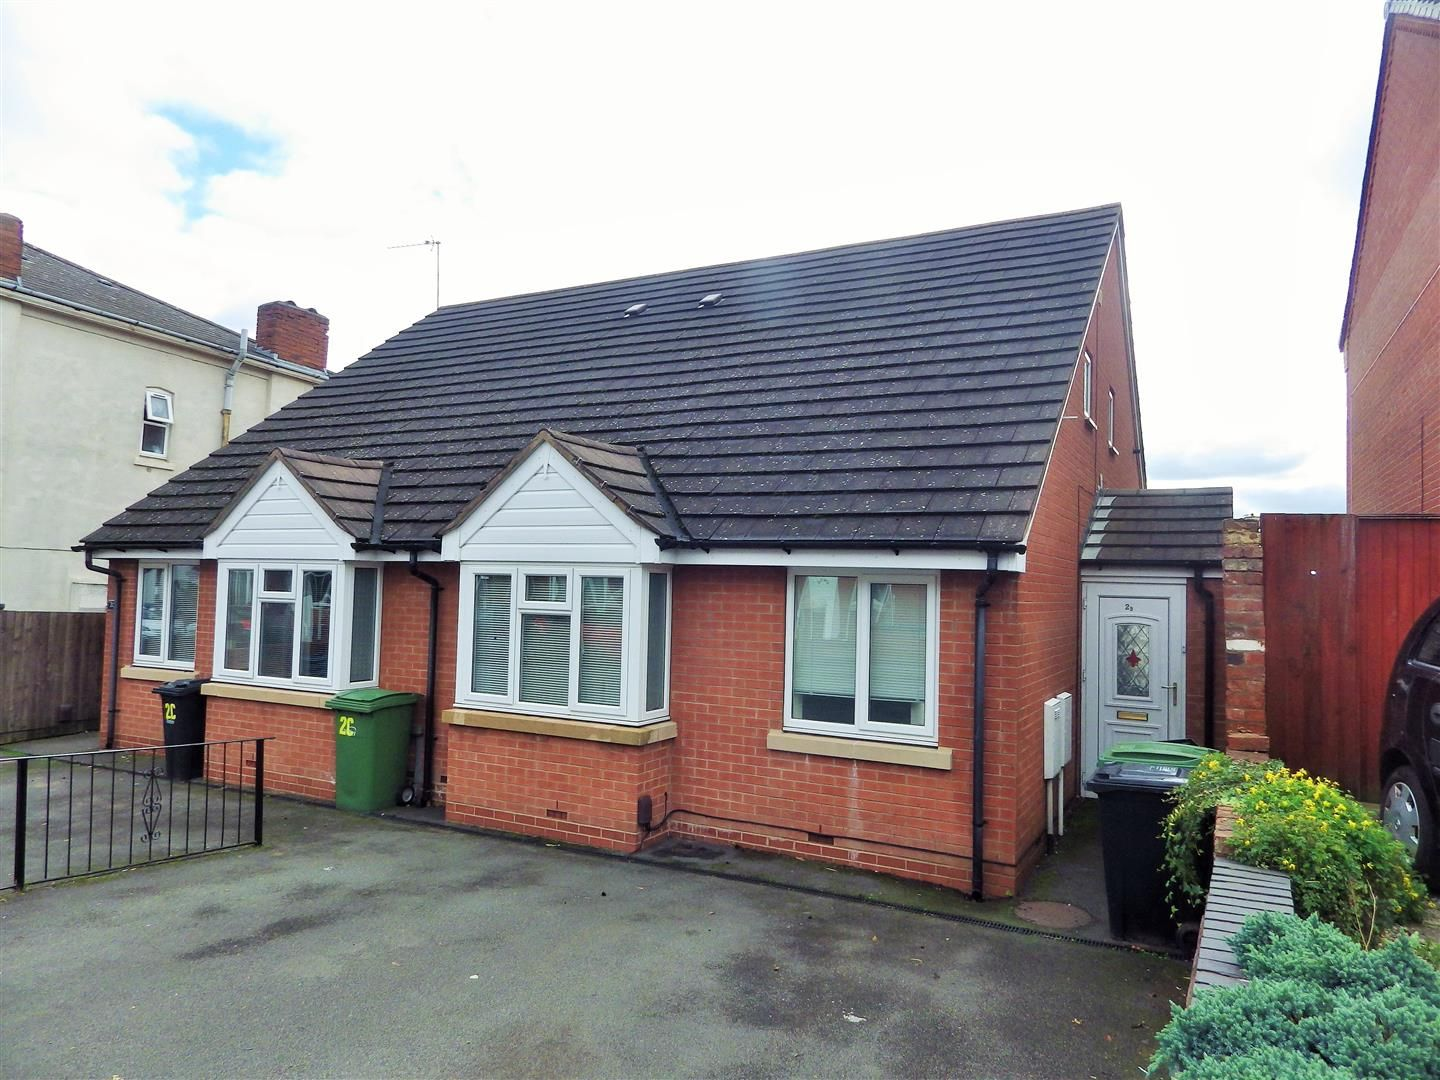 3 bed semi-detached-bungalow for sale  - Property Image 1